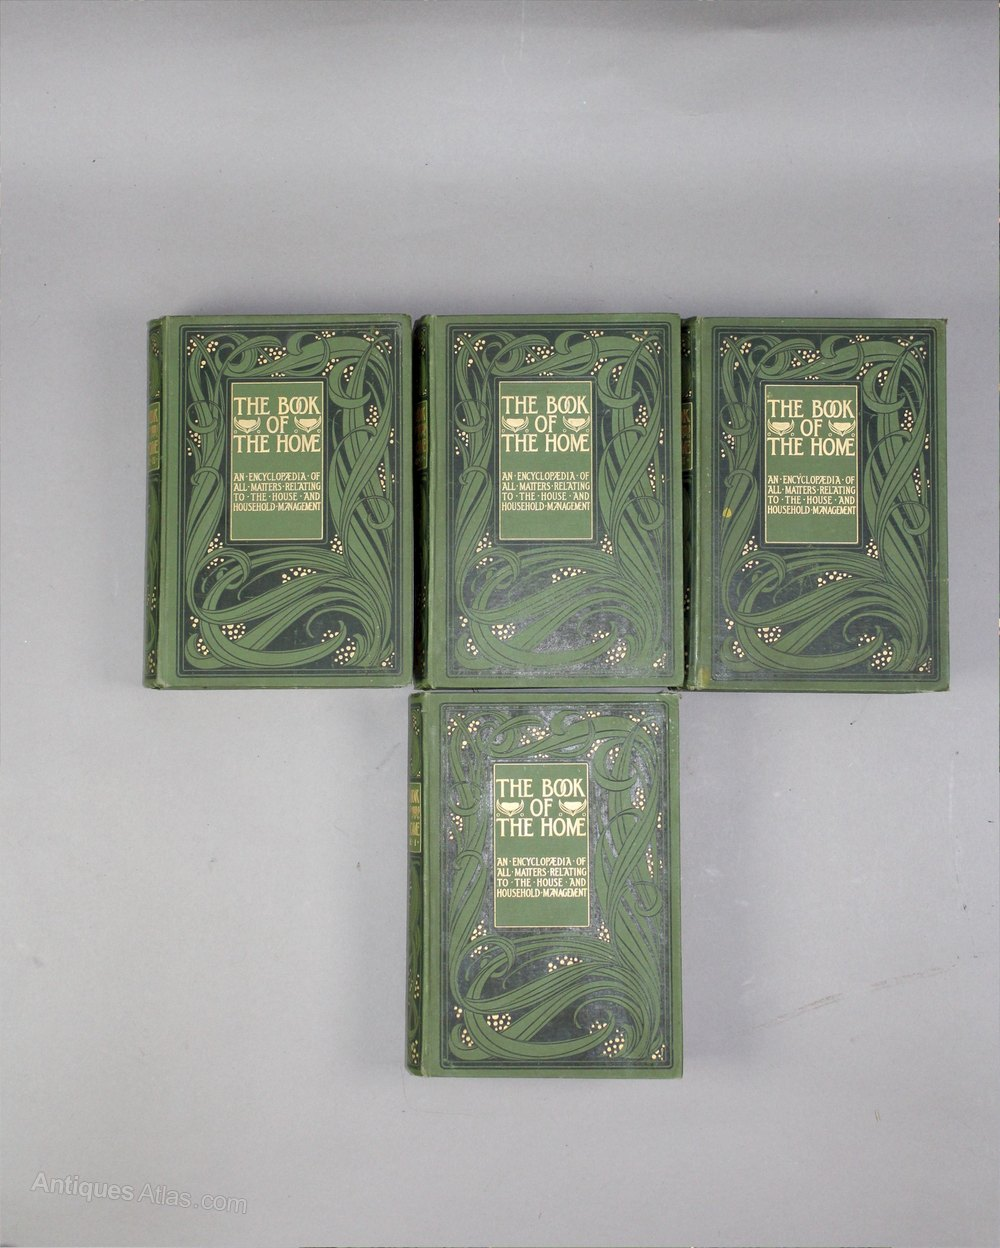 Book Cover Art And Craft ~ Antiques atlas set of four books with arts and crafts covers